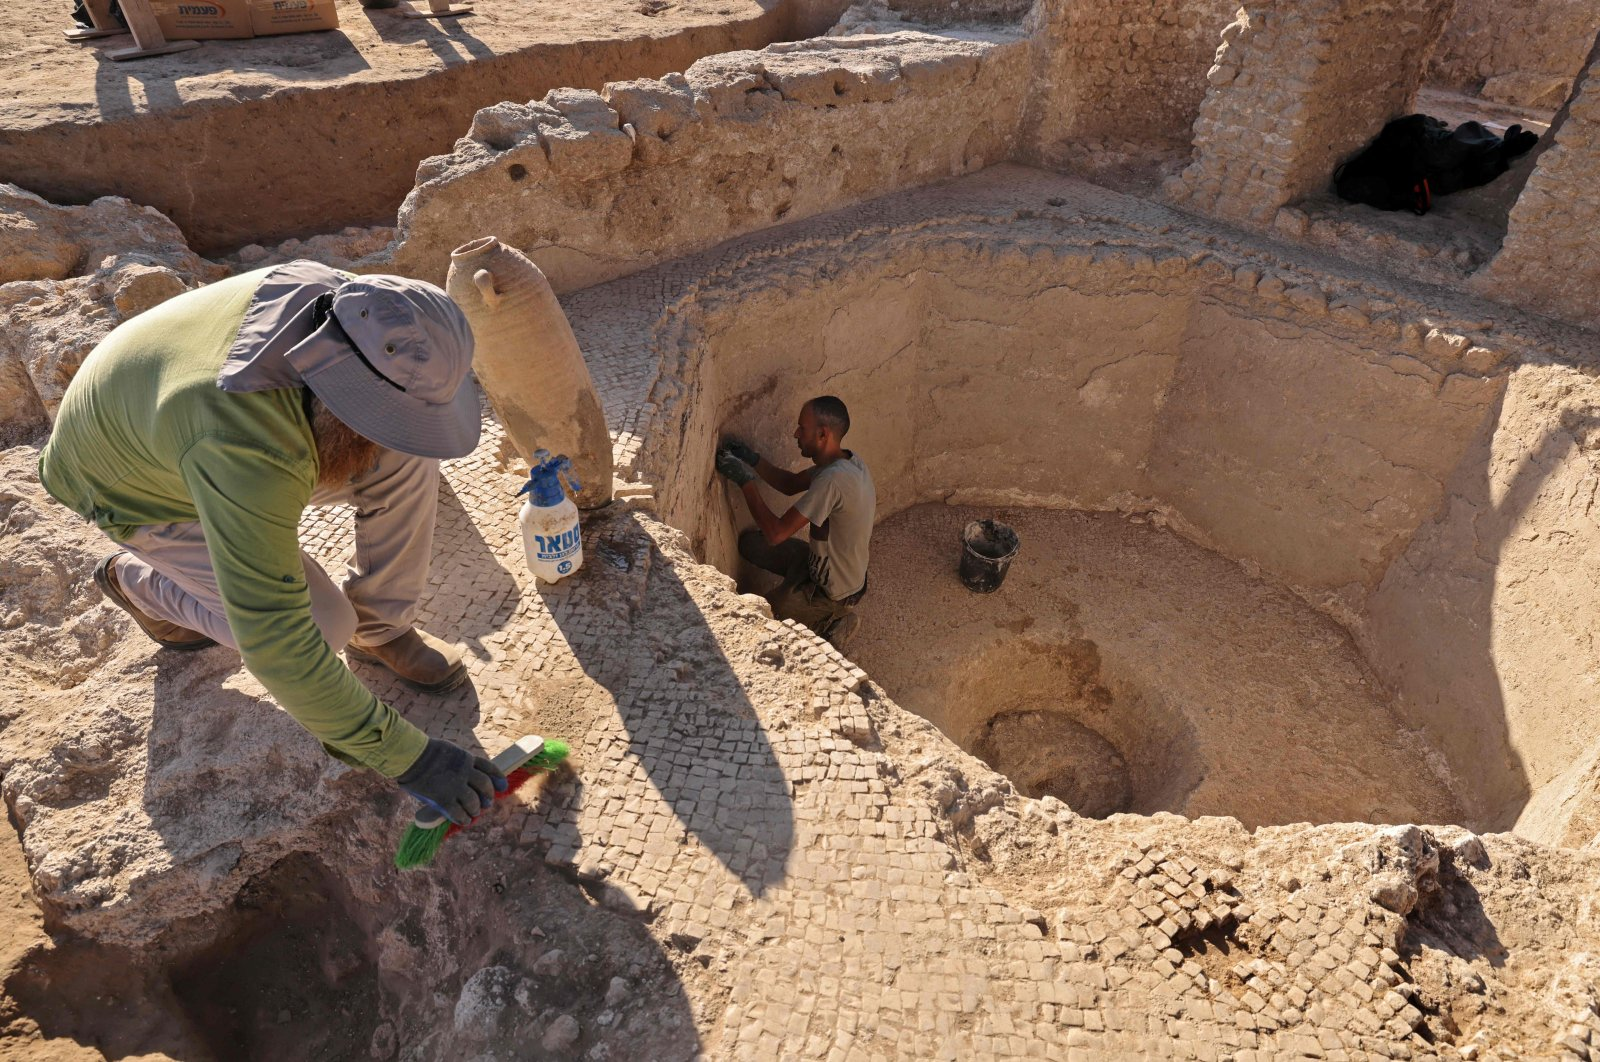 Archaeologists and technicians of the Israel Antiquities Authority excavate inside a collecting vat of a winepress at the Tel Yavne site in central Israel, Oct. 11, 2021. (AFP Photo)